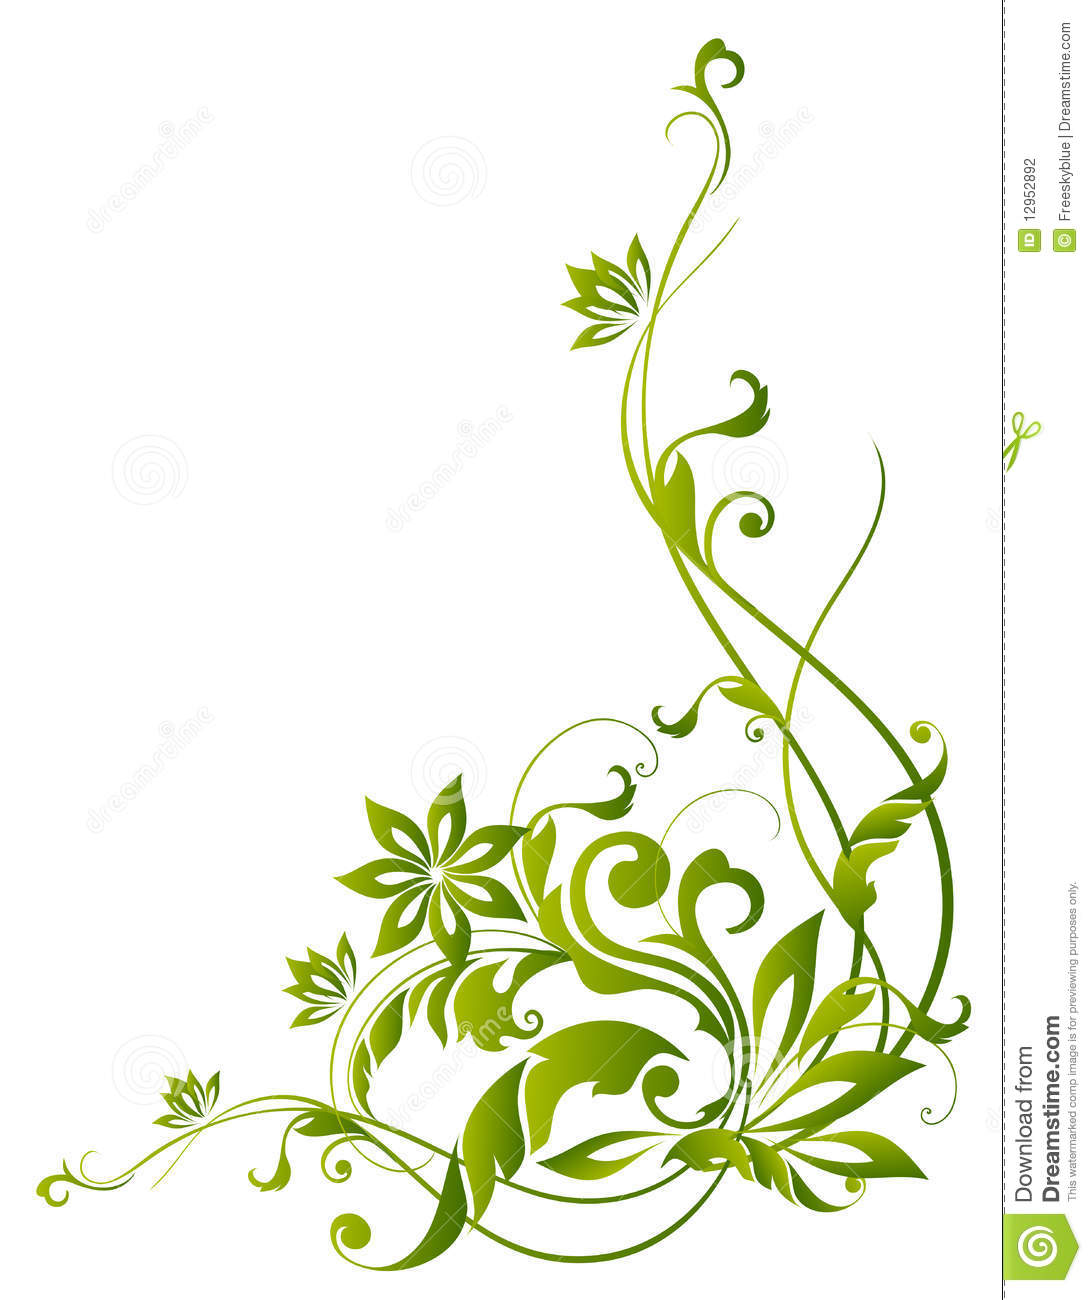 Green and white floral pattern - photo#33